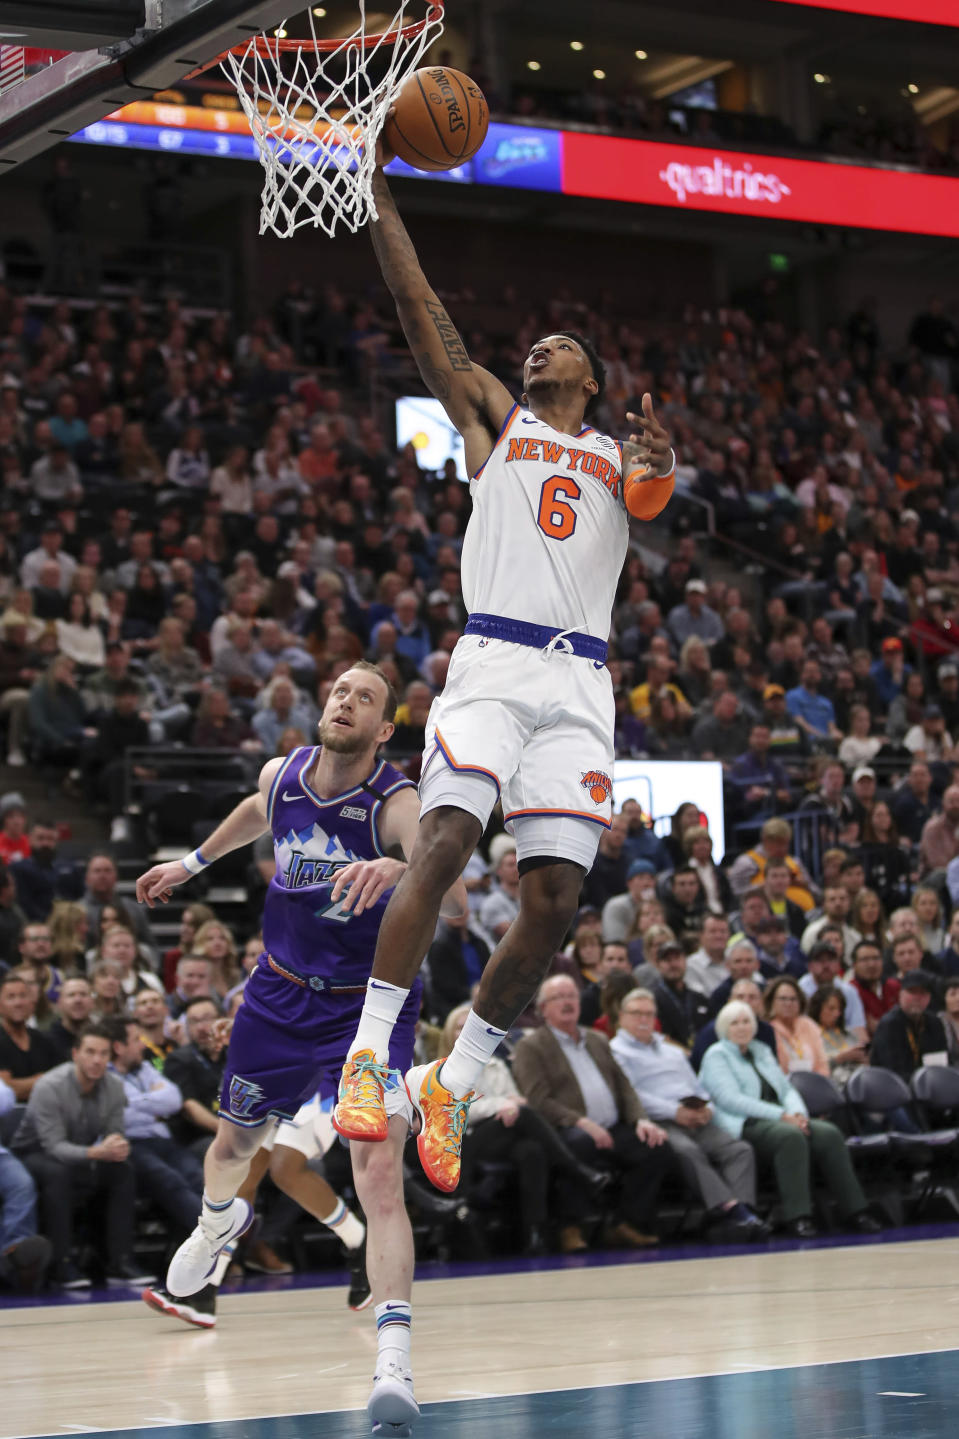 New York Knicks guard Elfrid Payton (6) lays the ball up next to Utah Jazz forward Joe Ingles (2) during the second quarter of an NBA basketball game Wednesday, Jan. 8, 2020, in Salt Lake City. (AP Photo/Chris Nicoll)